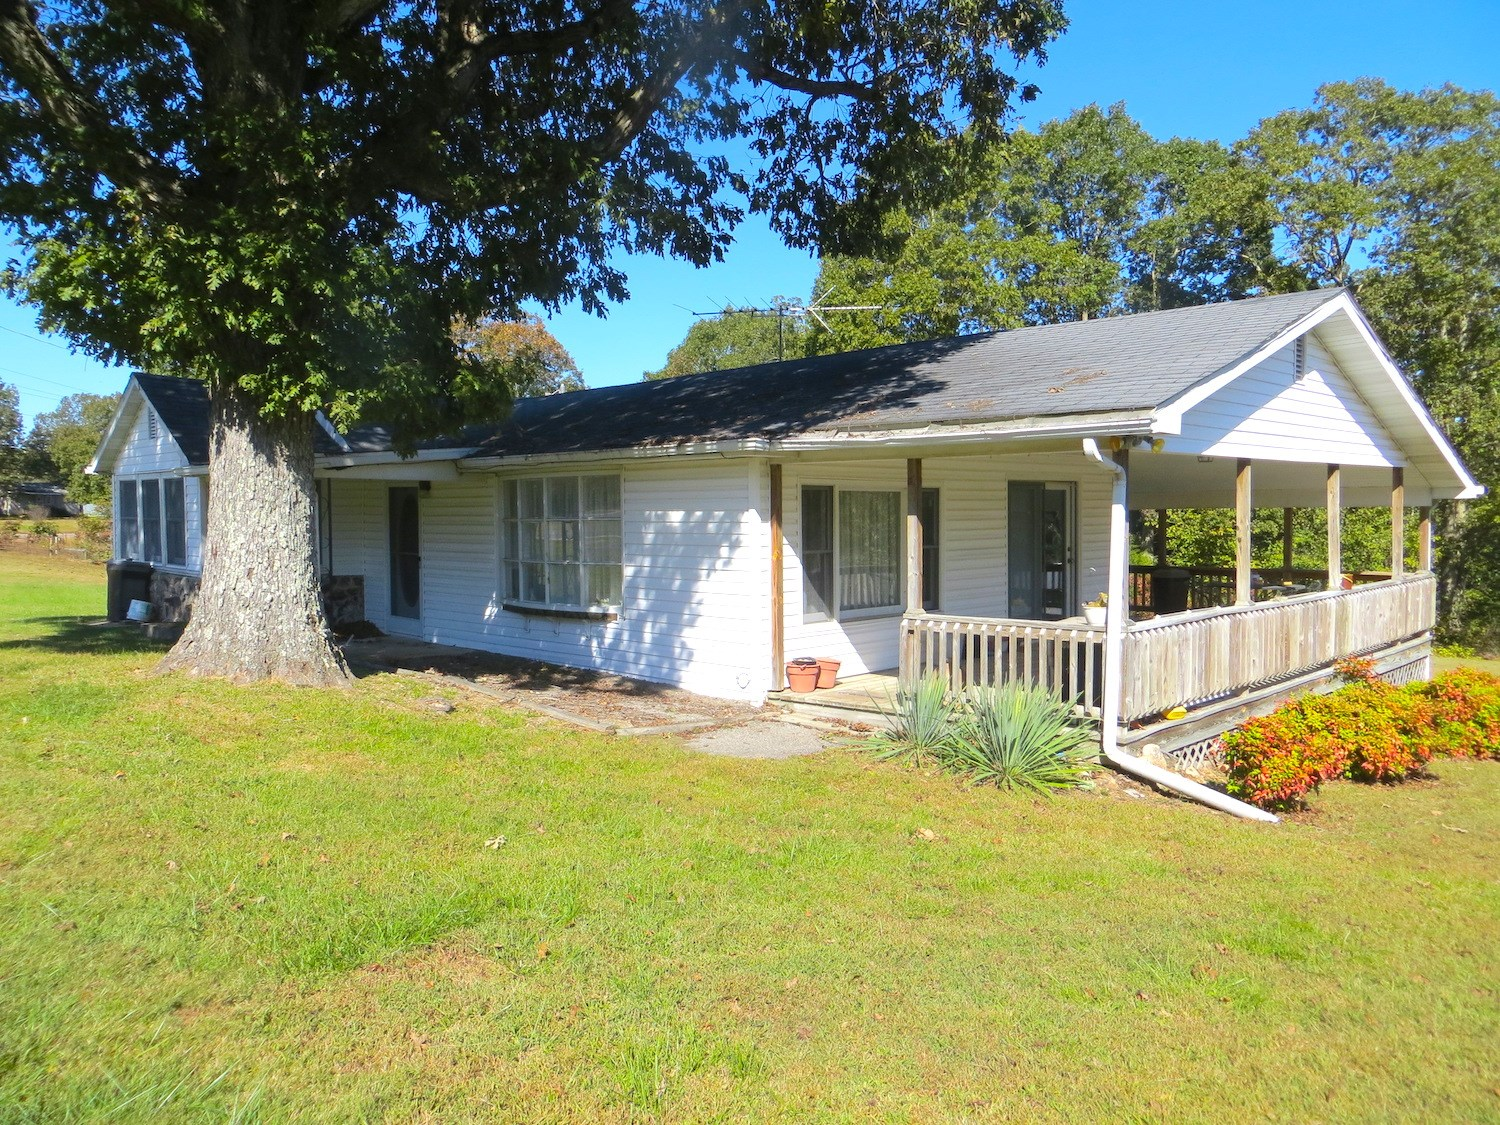 Country Home for Sale with Acreage in Alton, MO